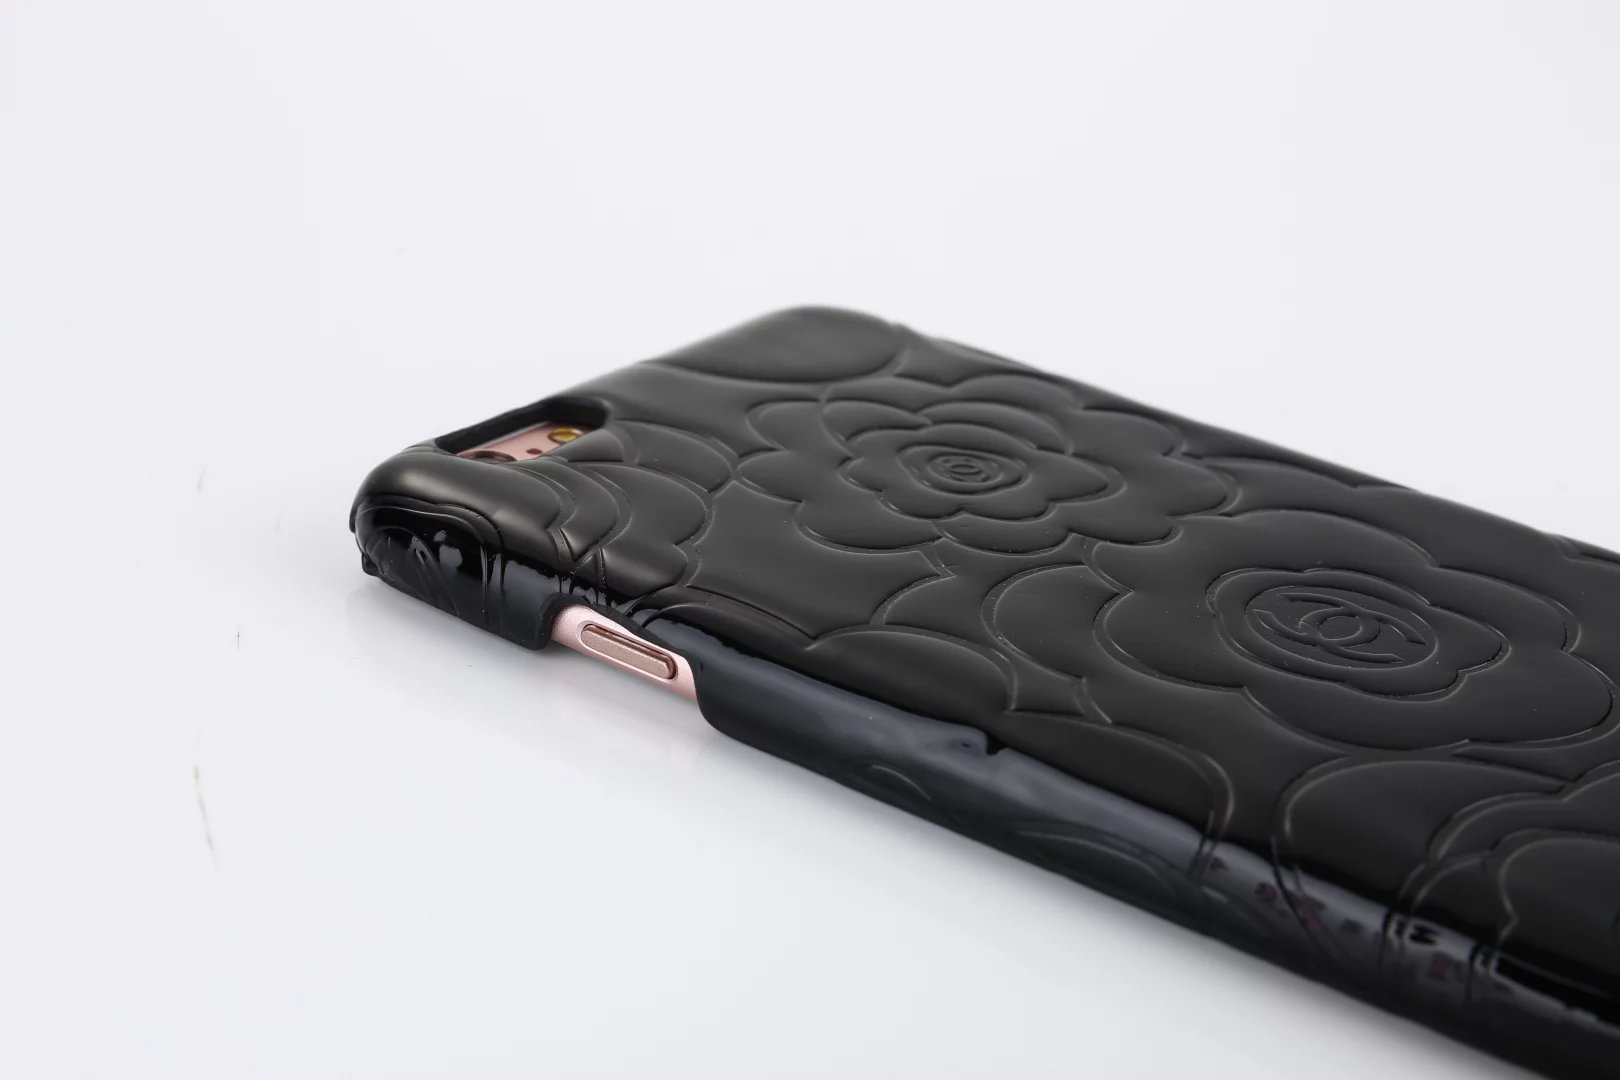 iphone 7 designer cases iphone 7 best cases fashion iphone7 case iphone 7 case best apple iphone 7 covers and cases unique cell phone cases where can i buy cell phone cases phone cases for iphone 7 apple rumors iphone 7